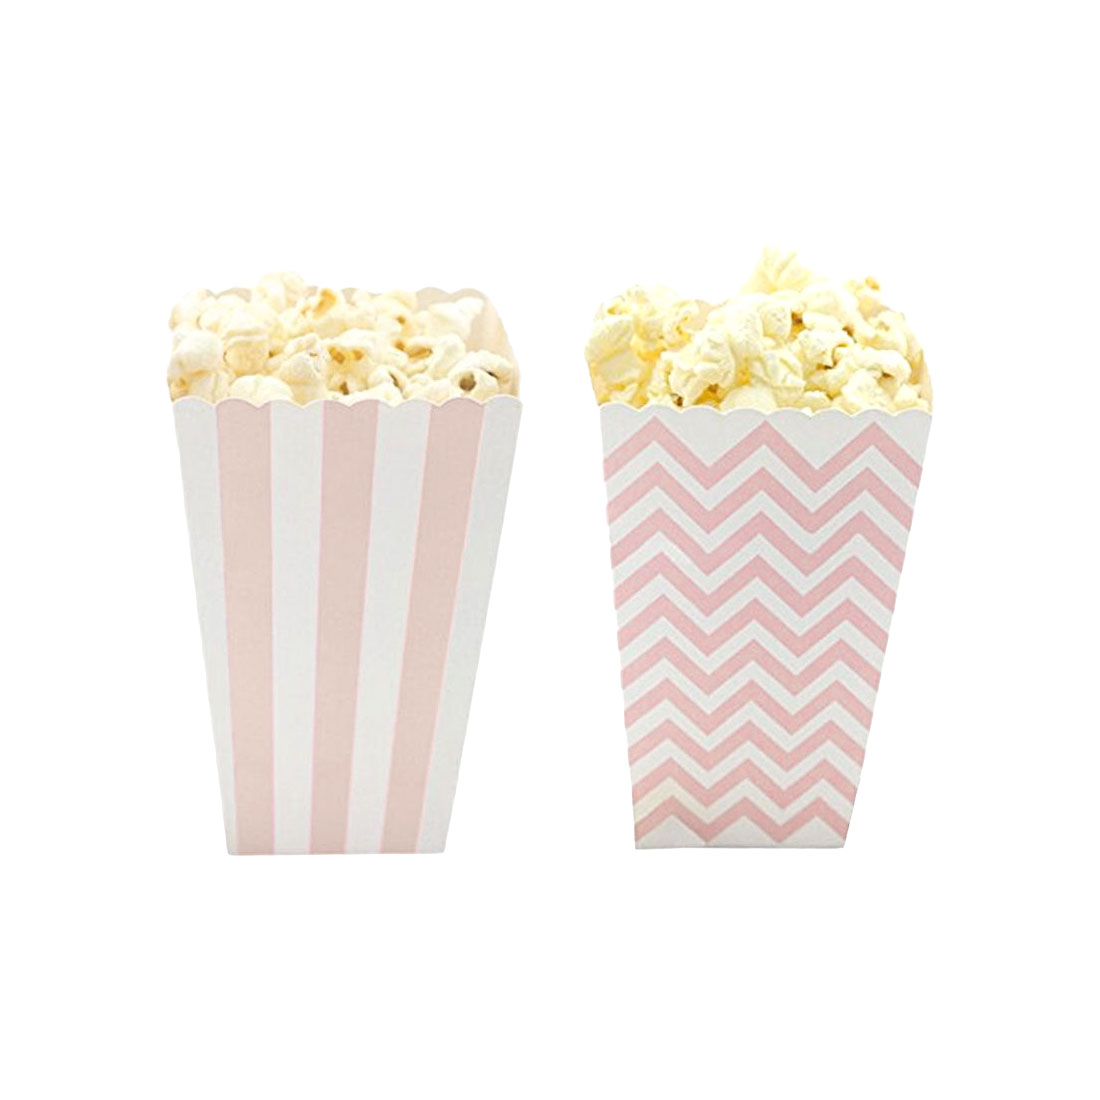 12pcs Popcorn Box Pink Stripes Dot Gold Gift Box Birthday Party Party Favor Wedding Pop Corn Kid Party Decoration Bags Loot